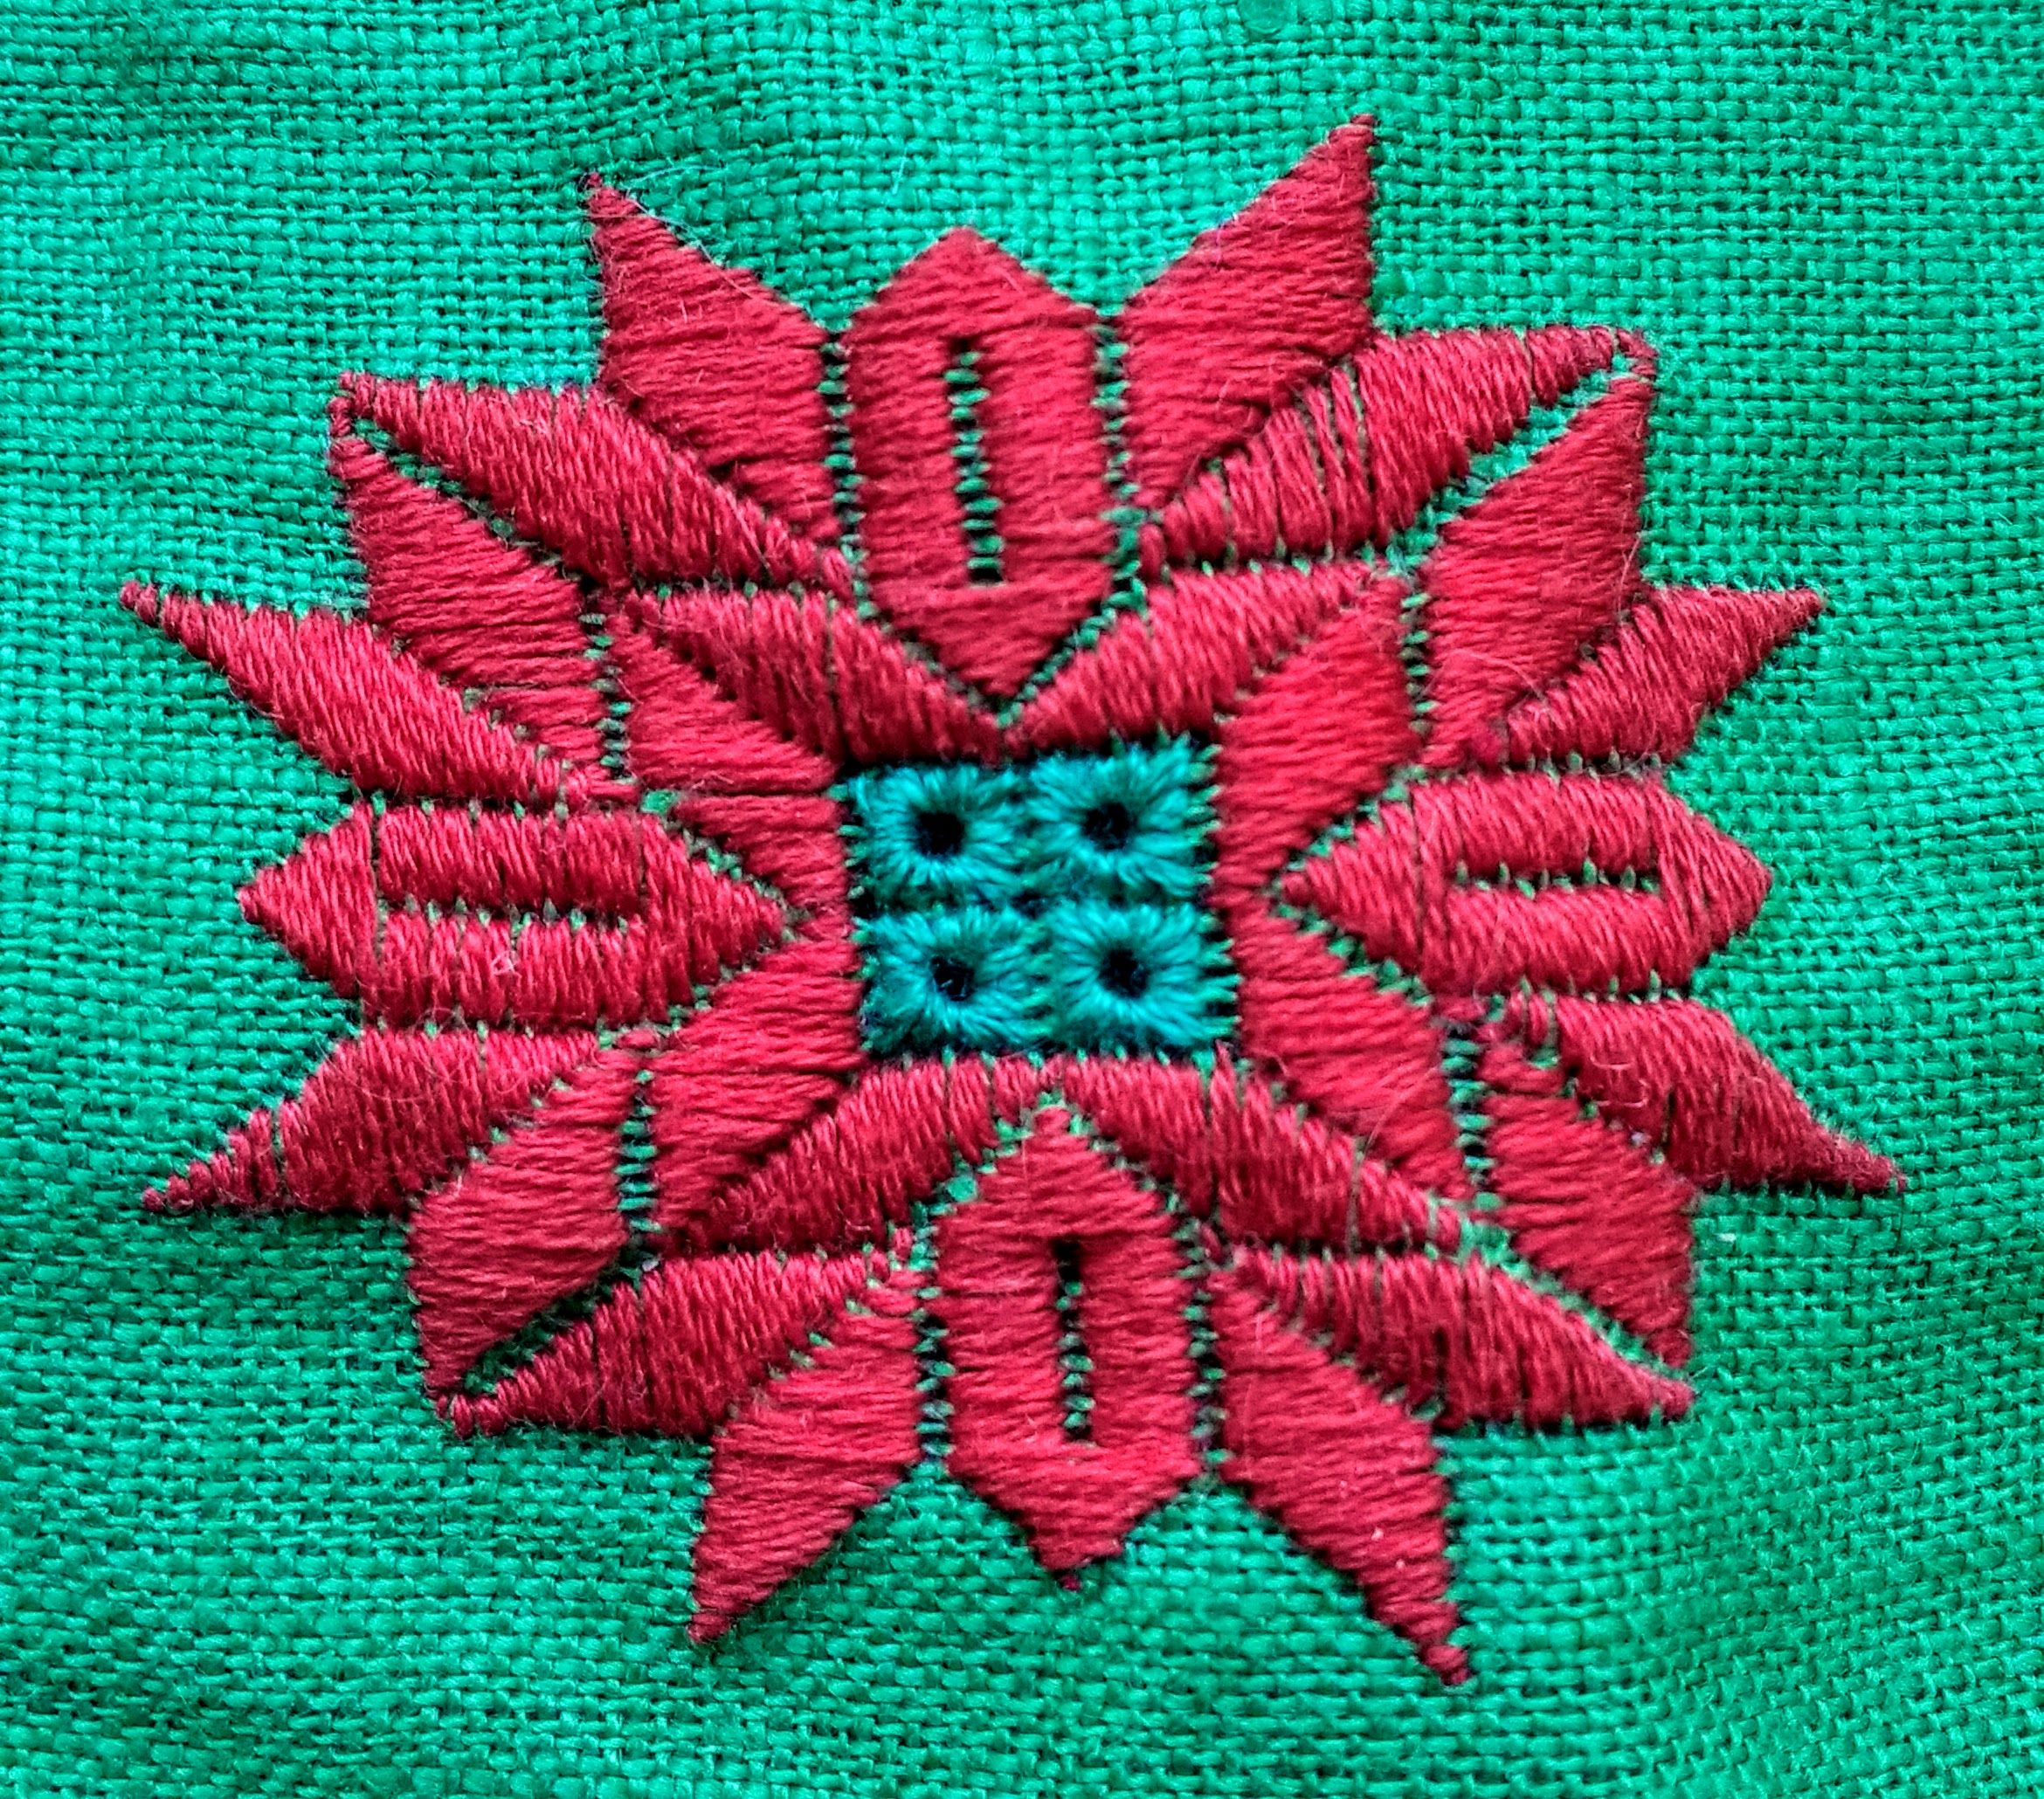 Red rose hand embroidery floral embroidered pattern hand